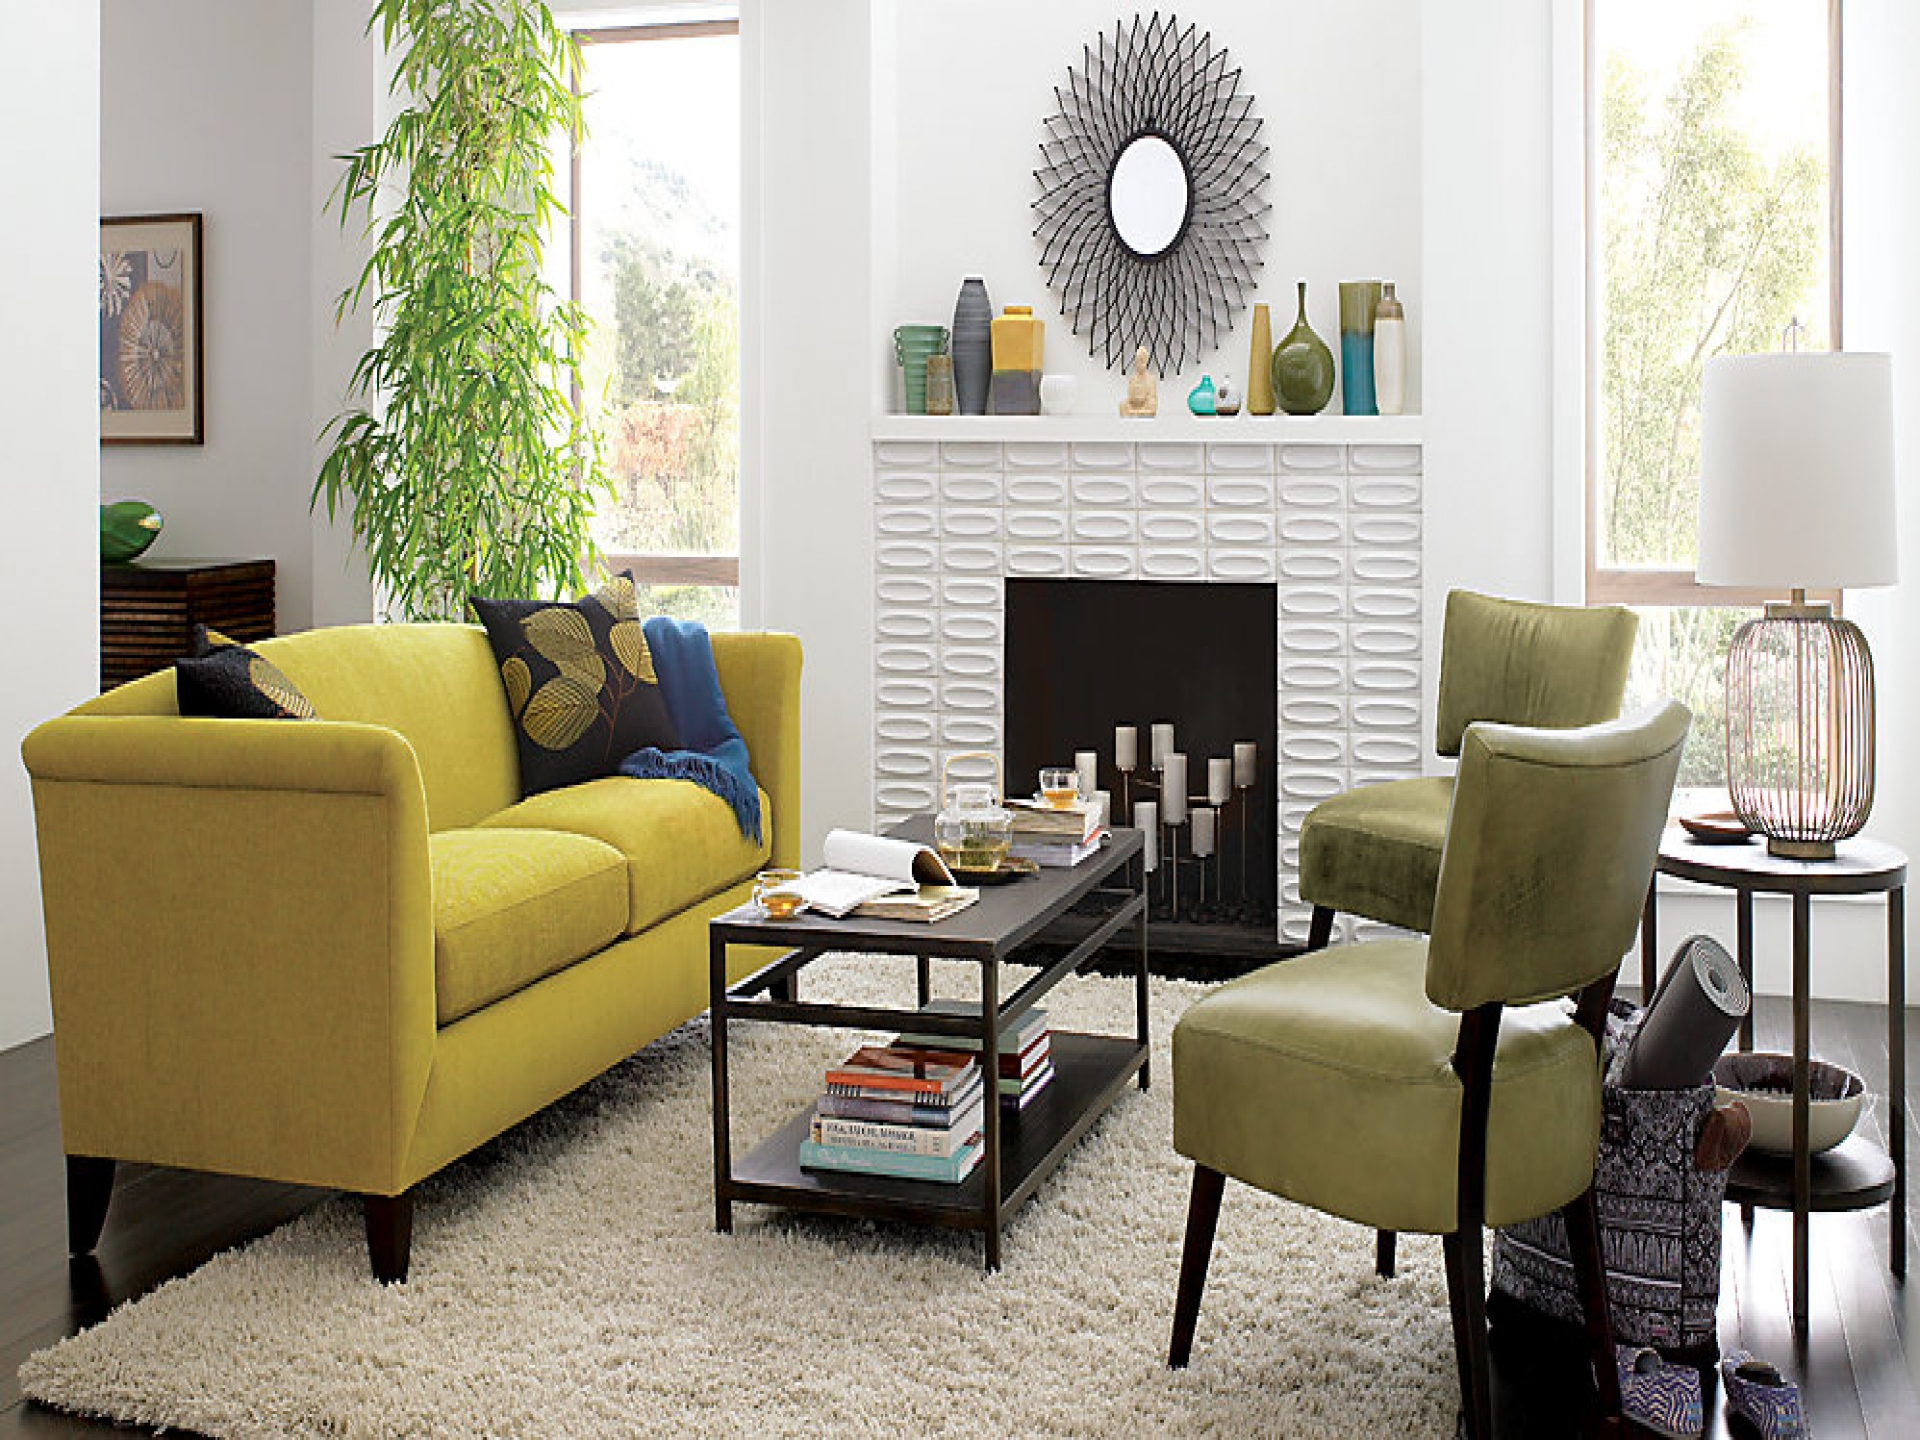 living room yellow fabric loveseat sofa white rug black wood coffee table accent chairs lacquered floor round side lamp fireplace decorative urns bamboo plant accents ideas full